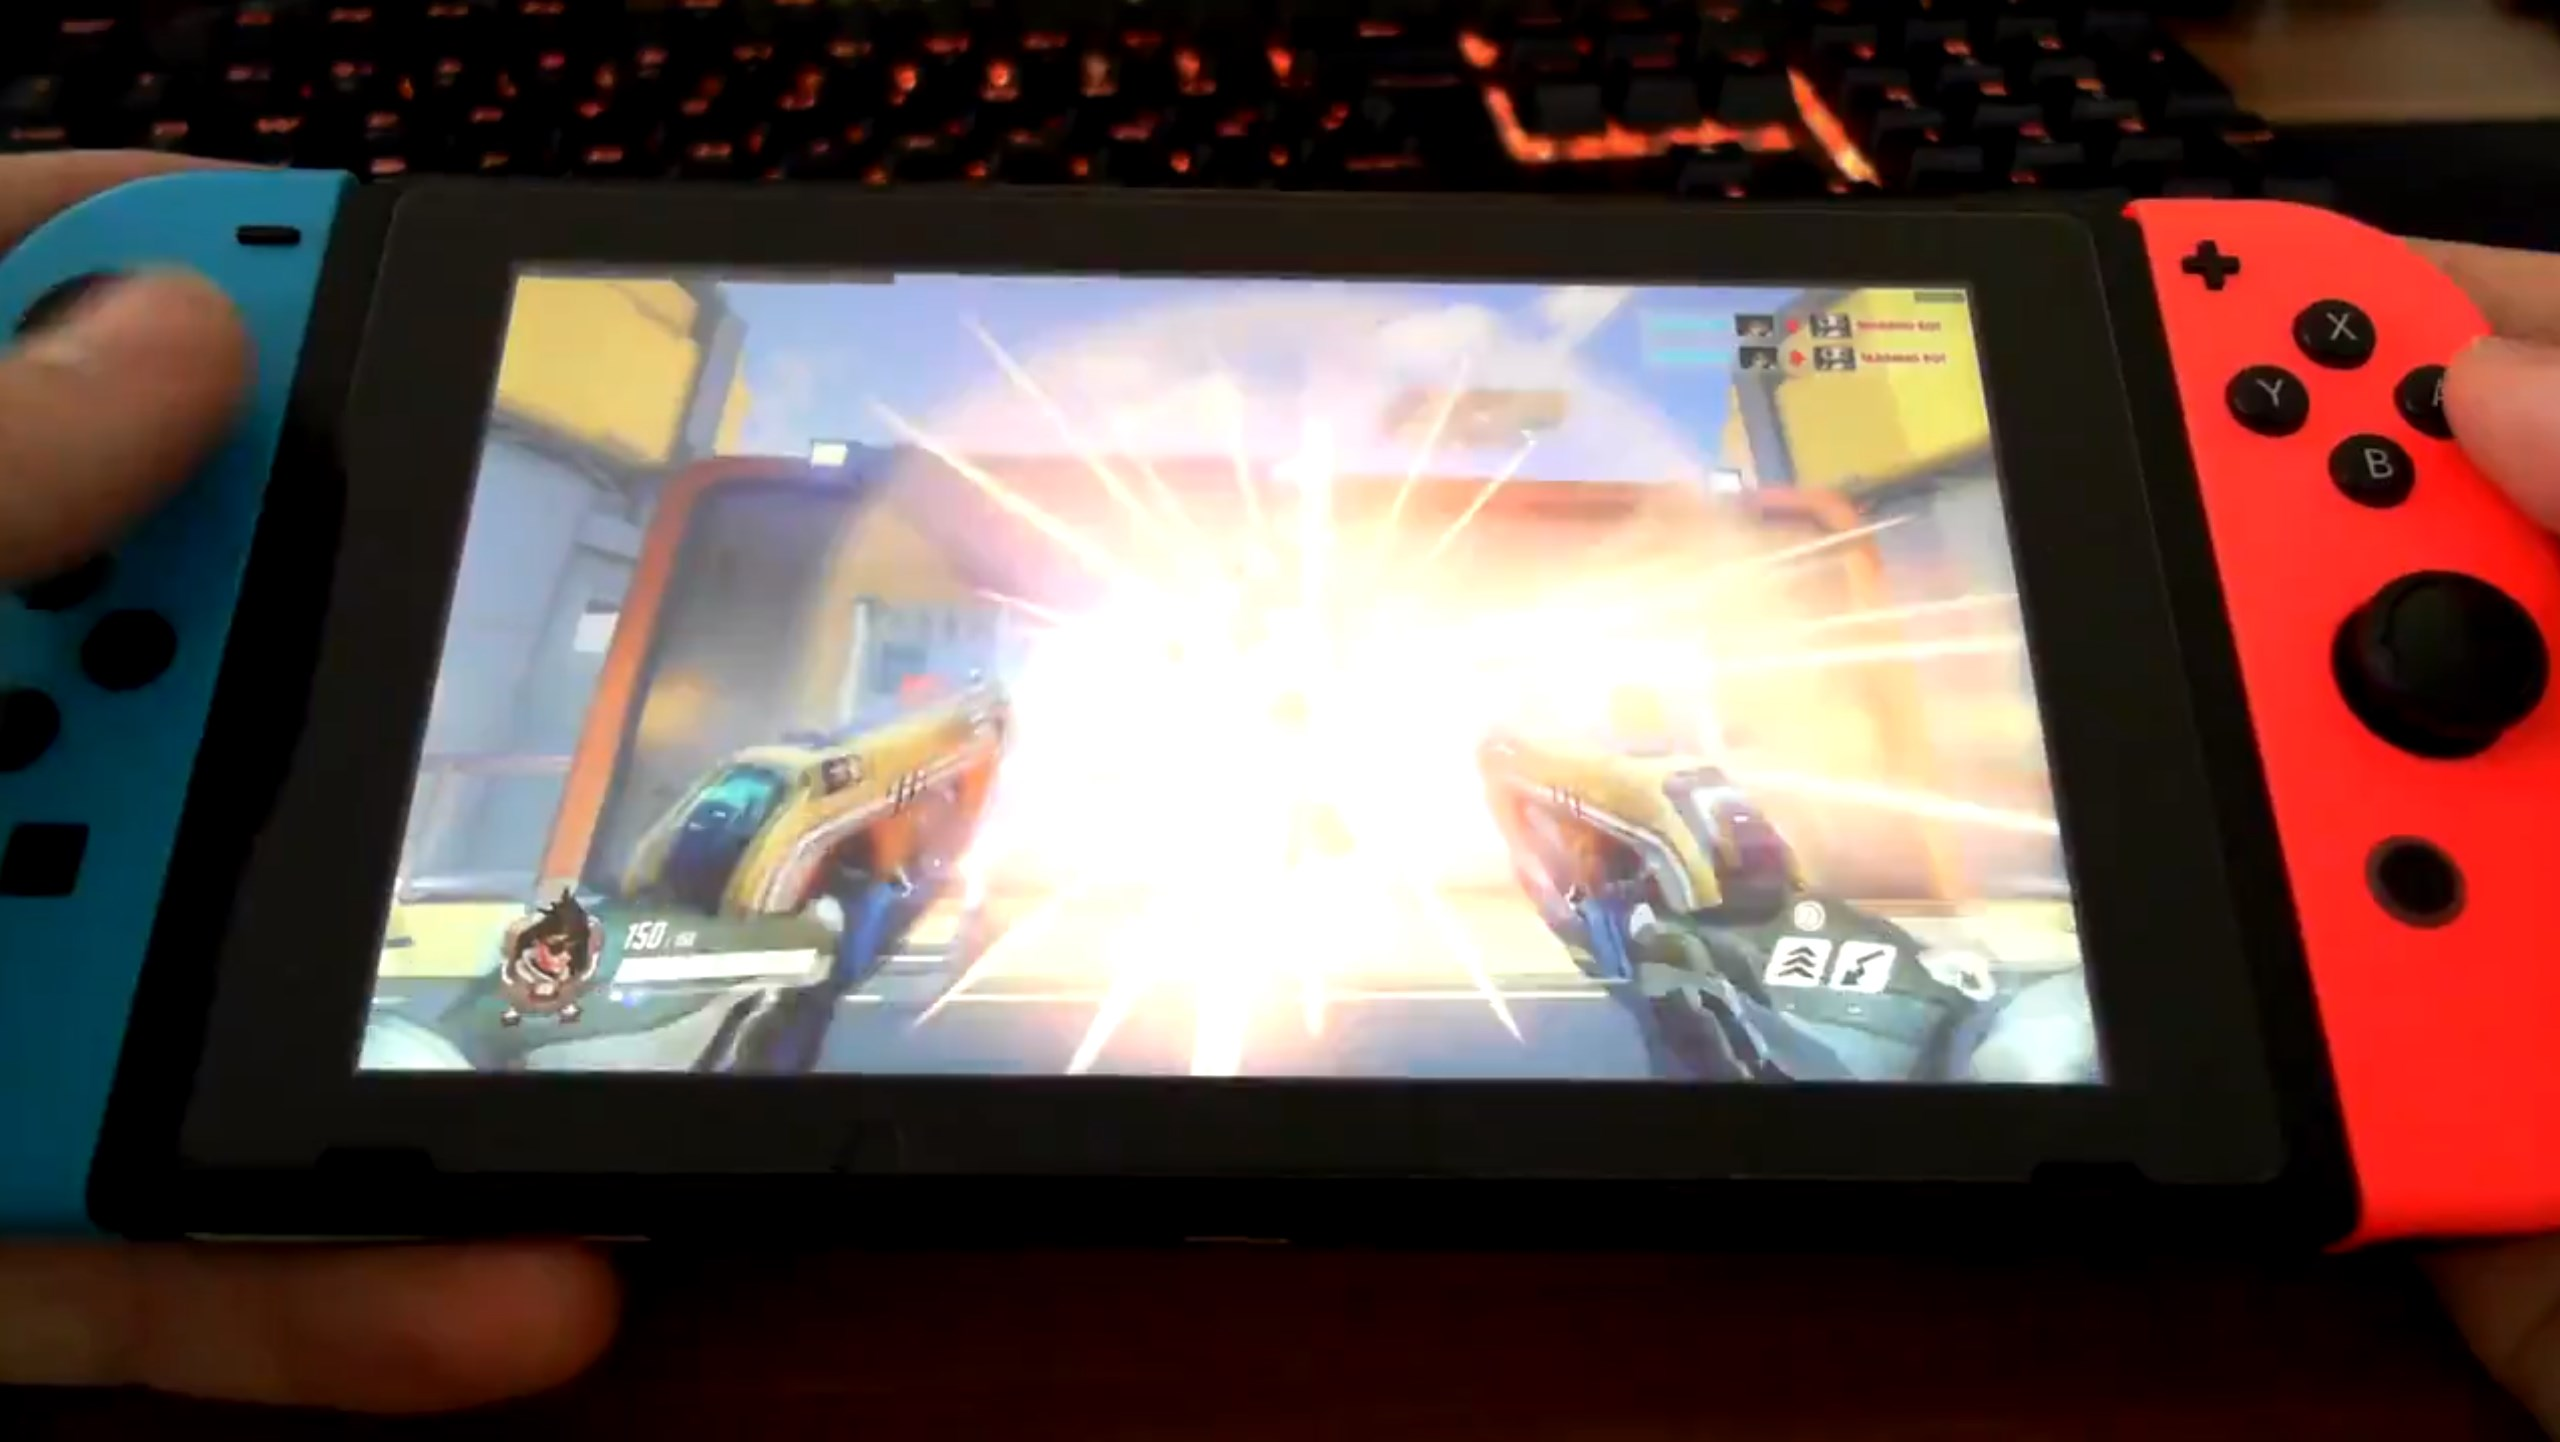 See Overwatch running on a Nintendo Switch - courtesy of Android